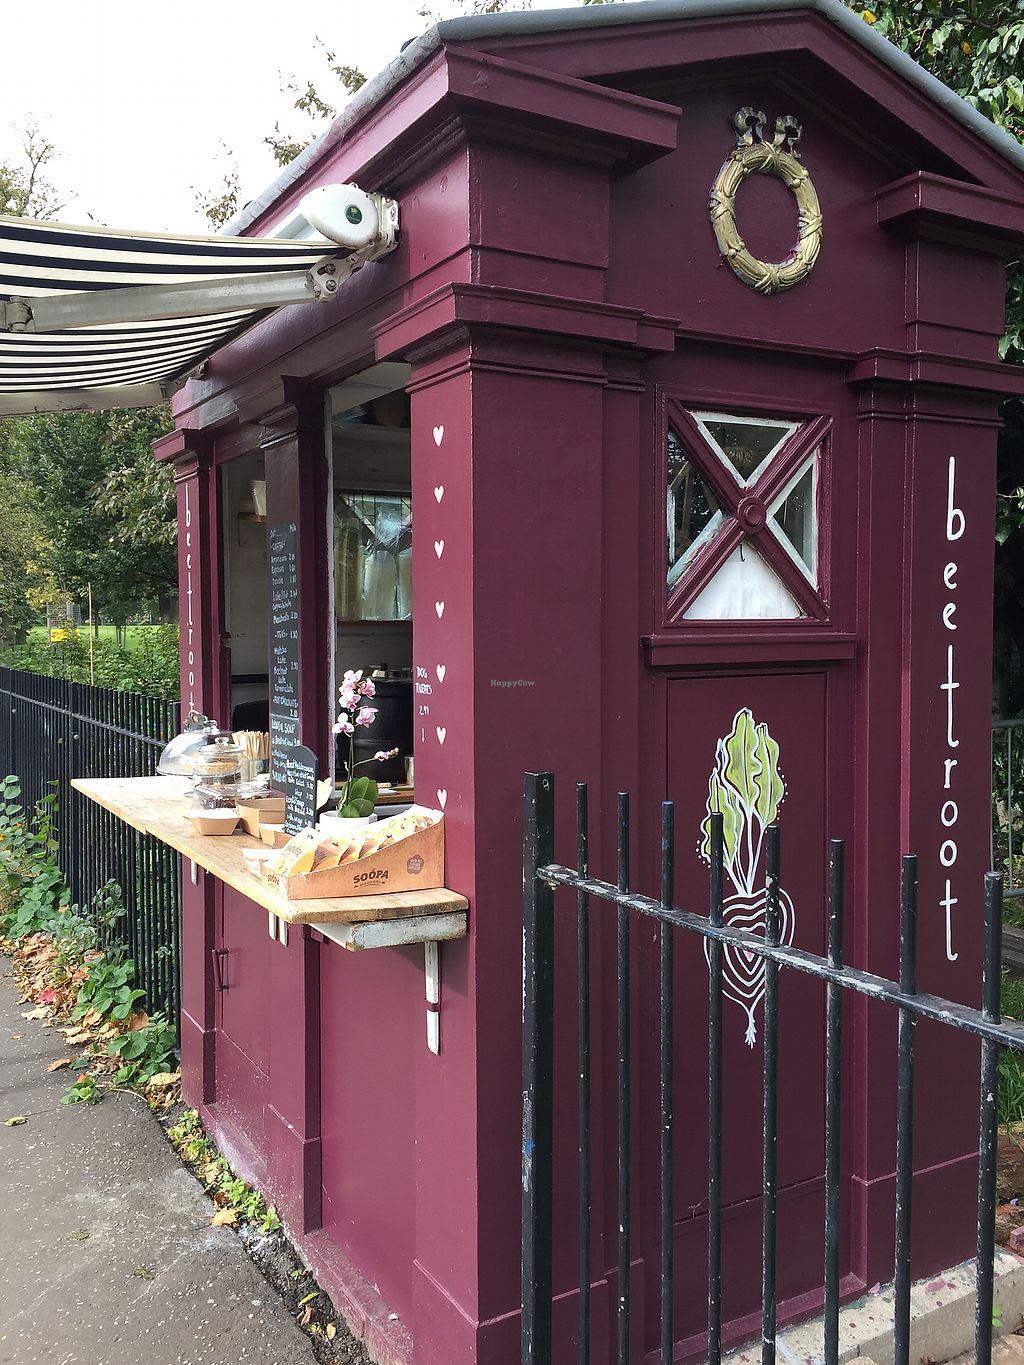 """Photo of Beetroot Cafe  by <a href=""""/members/profile/koringal"""">koringal</a> <br/>Beetroot cafe police box <br/> October 6, 2017  - <a href='/contact/abuse/image/102294/312304'>Report</a>"""